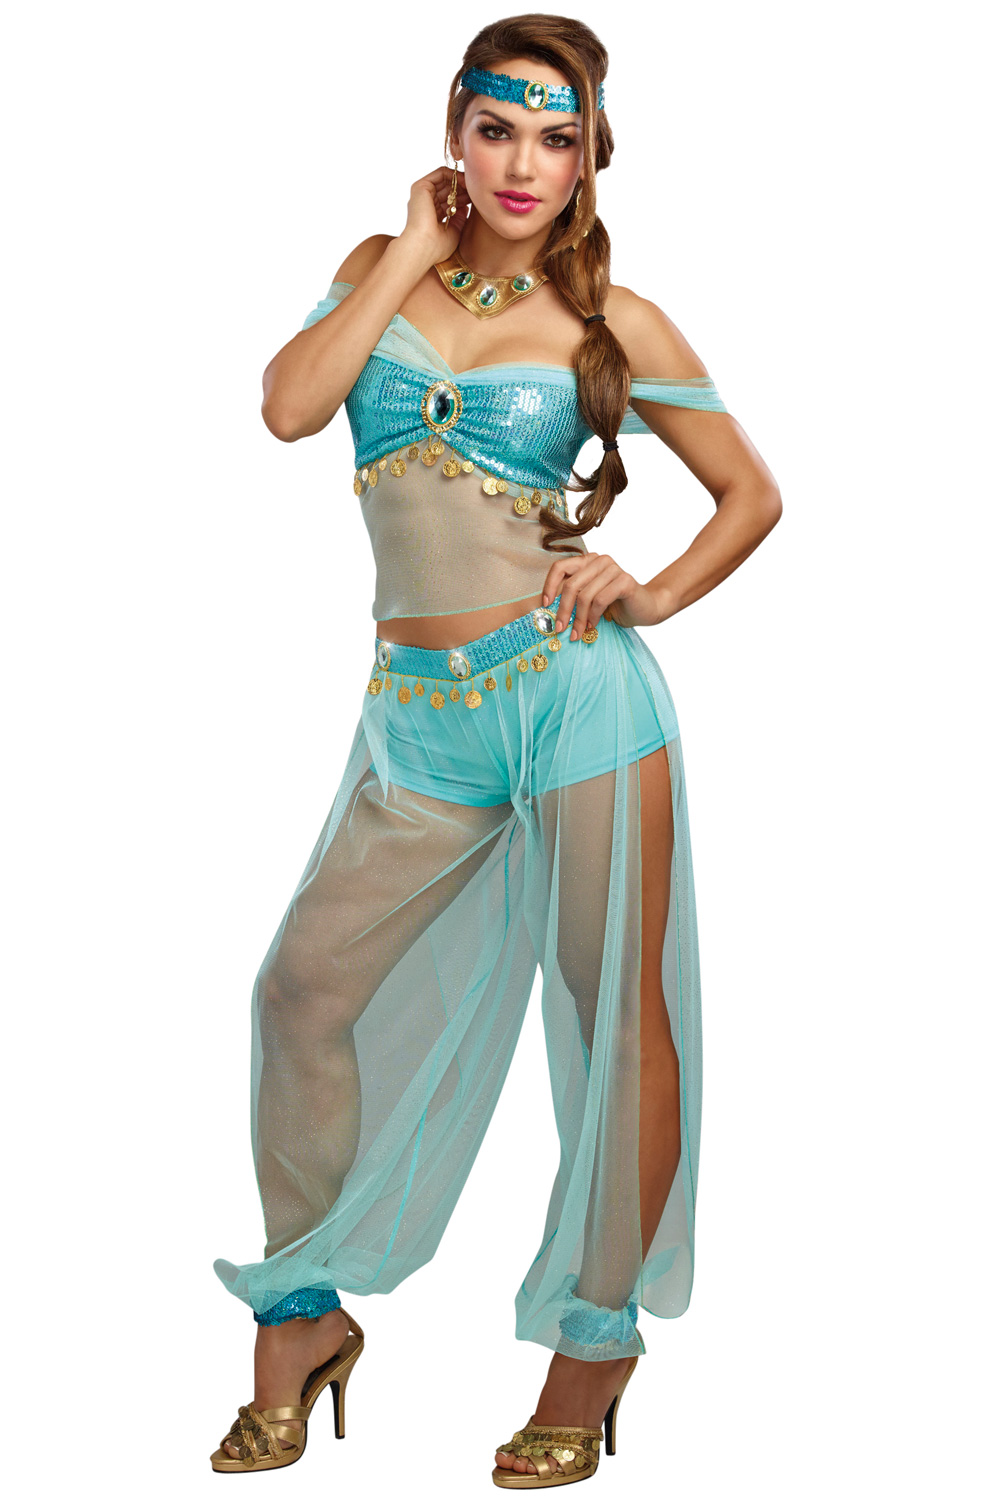 Cosplay and Anime Costumes  Kids and Adults Halloween